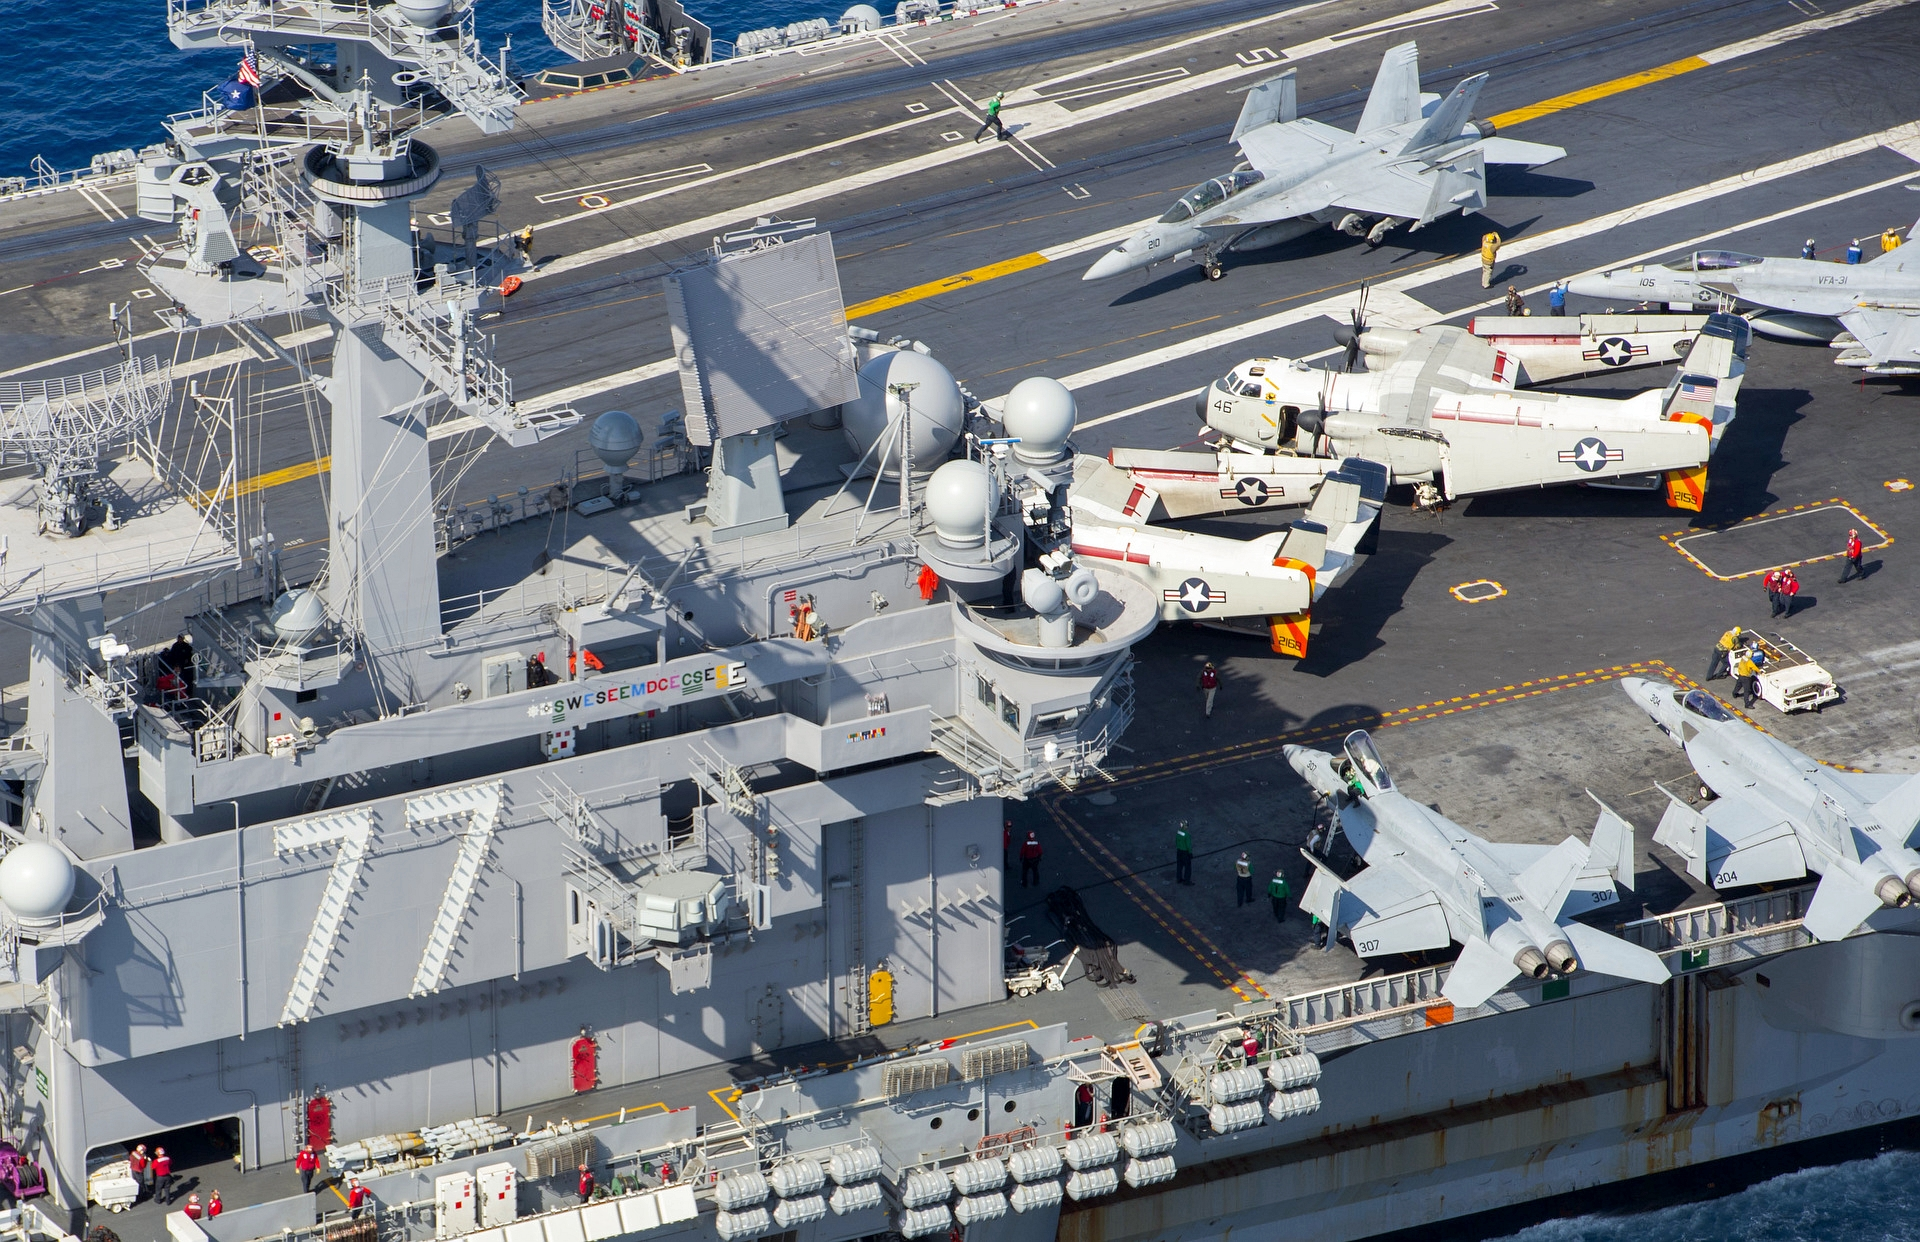 F/A-18F, F/A-18E i C-2A na pokładzie lotniskowca USS George H.W. Bush (US Navy / Mass Communication Specialist 3rd Class Daniel Gaither)